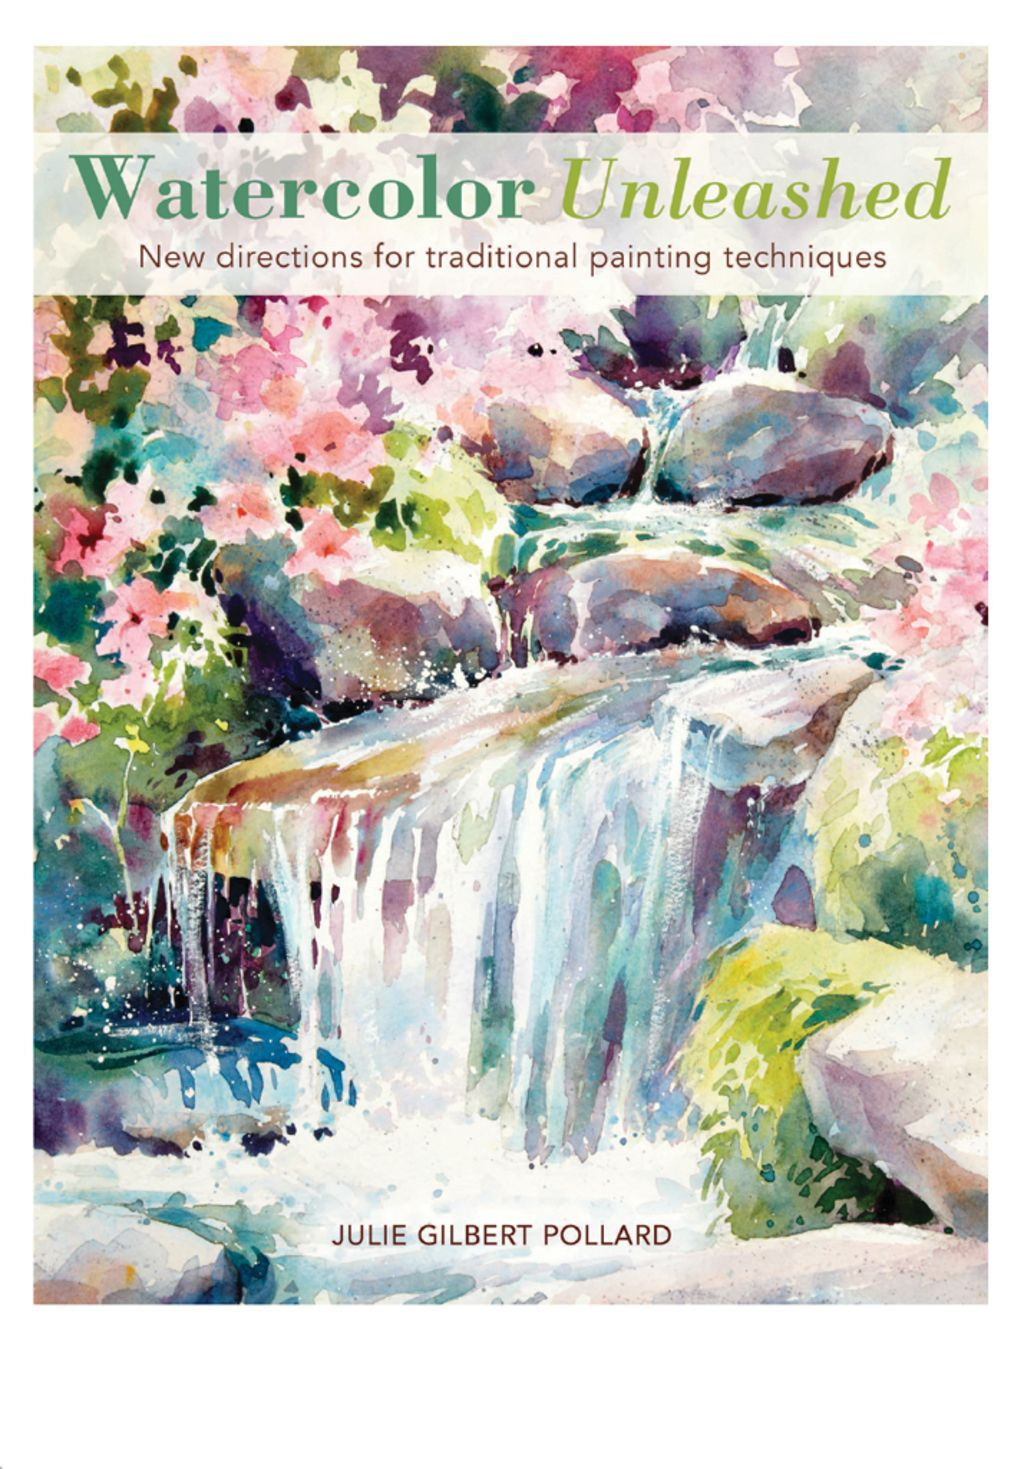 Watercolor Unleashed Ebook Painting Techniques Traditional